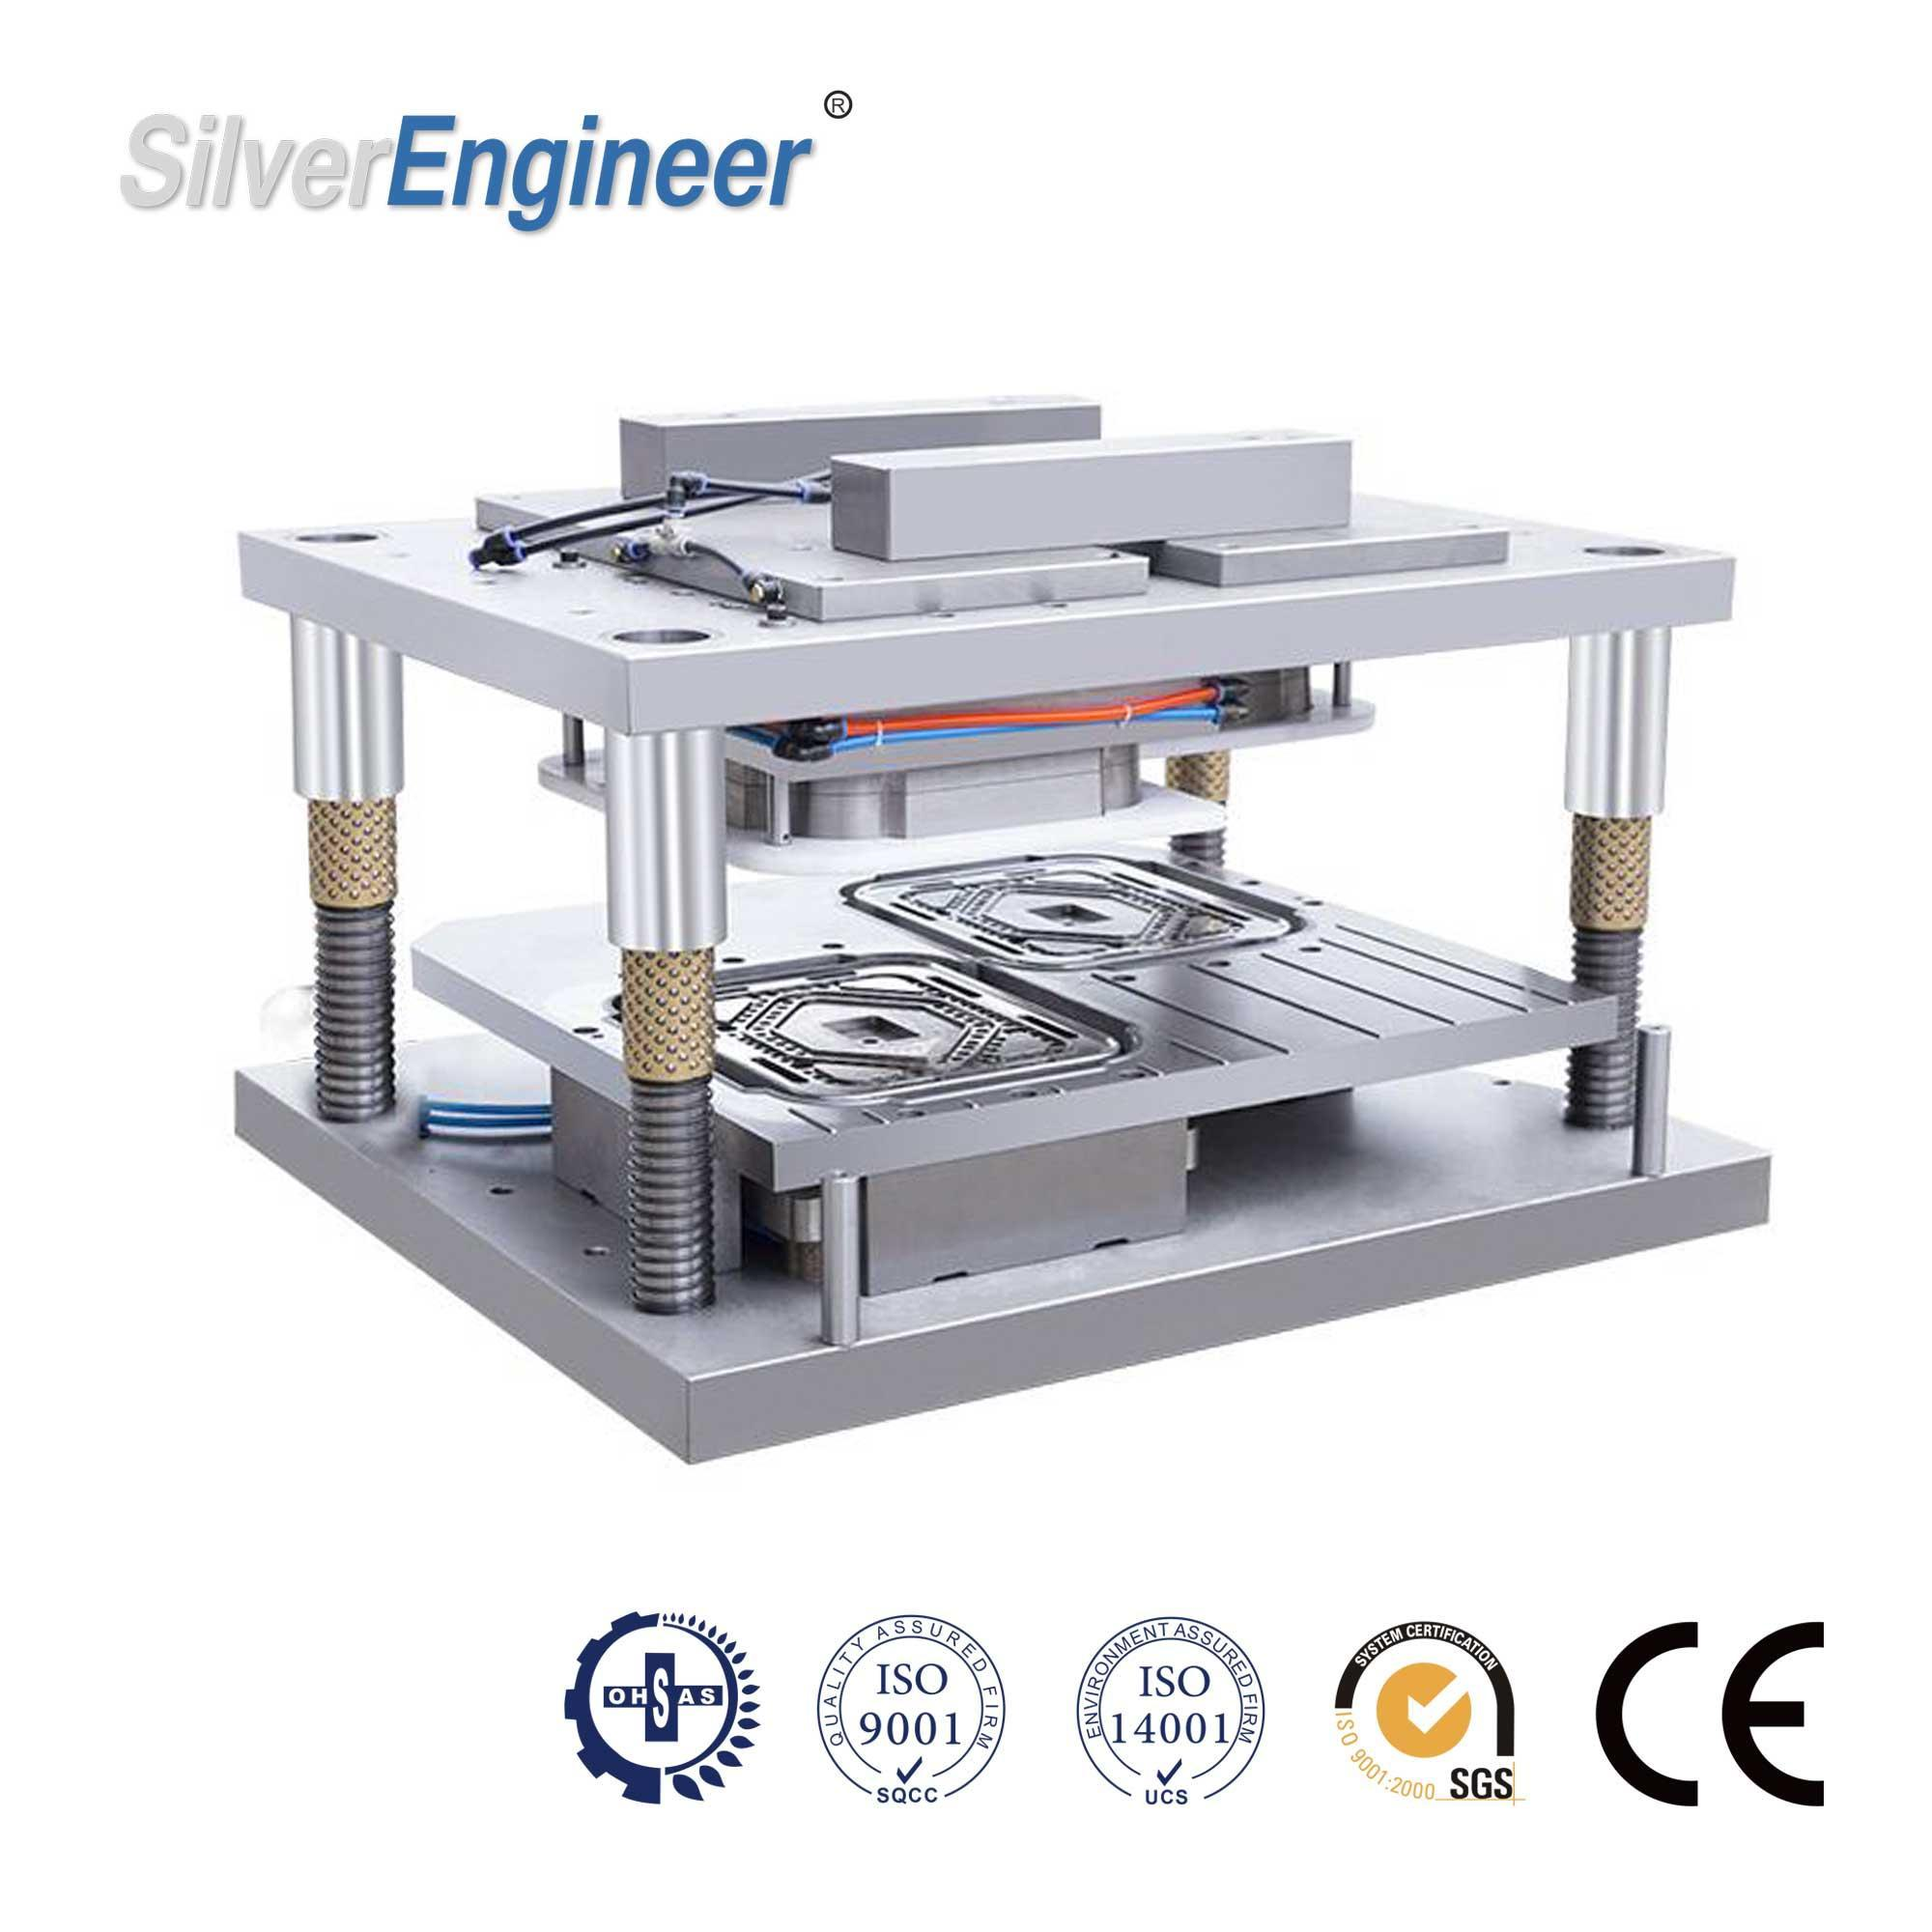 Aluminum Foil Container Mould for Disposable Food Container From Silverengineer 19